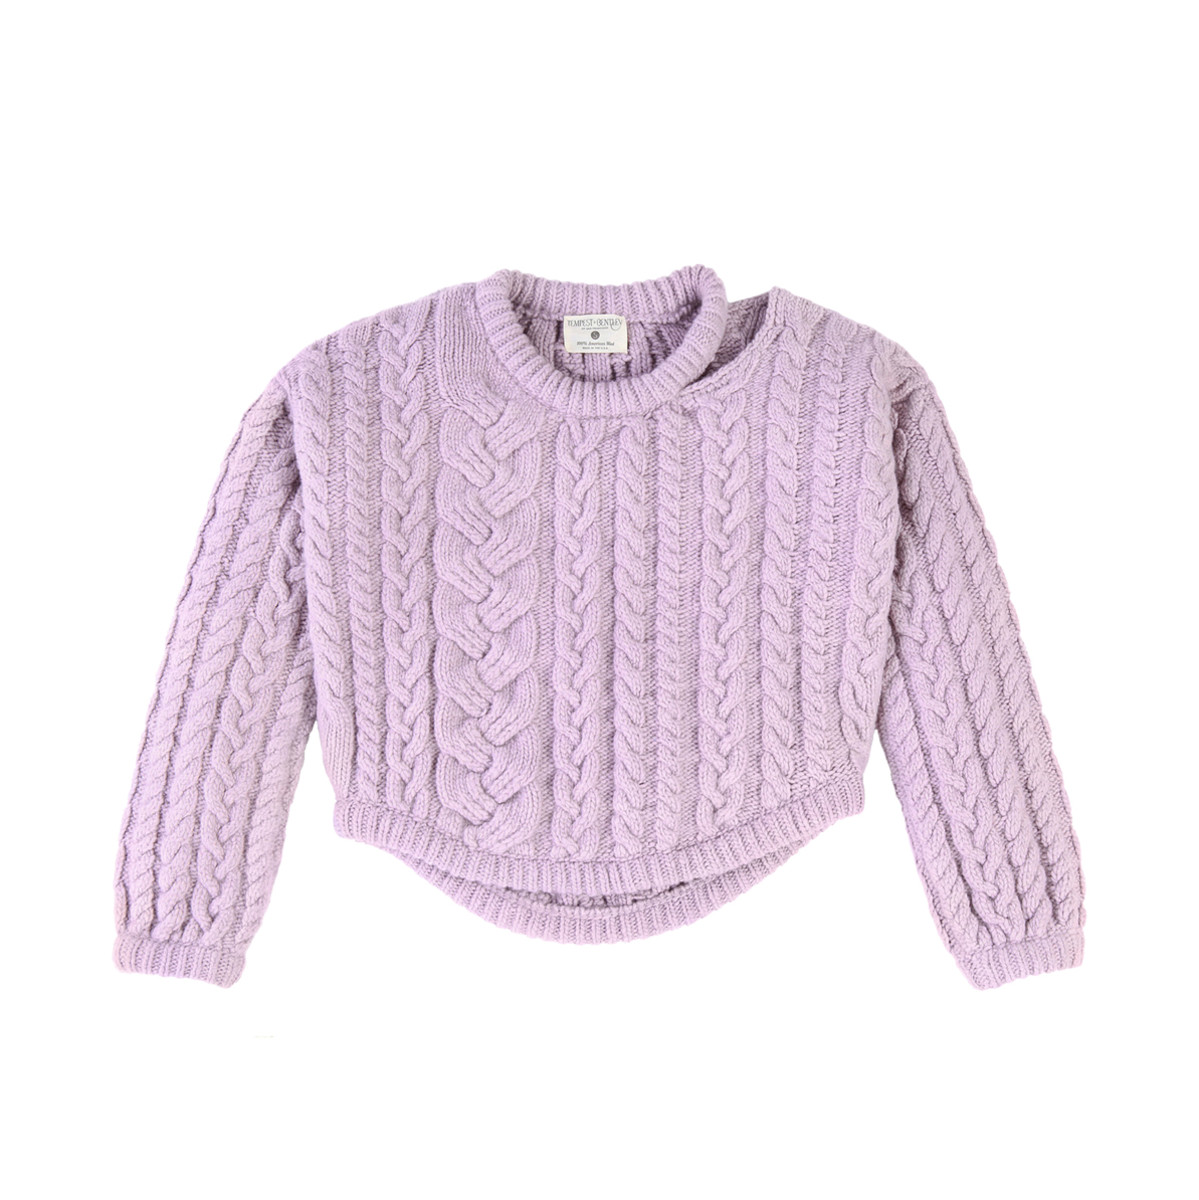 Tempest + Bentley cable pullover, $825, available at Maison de Mode